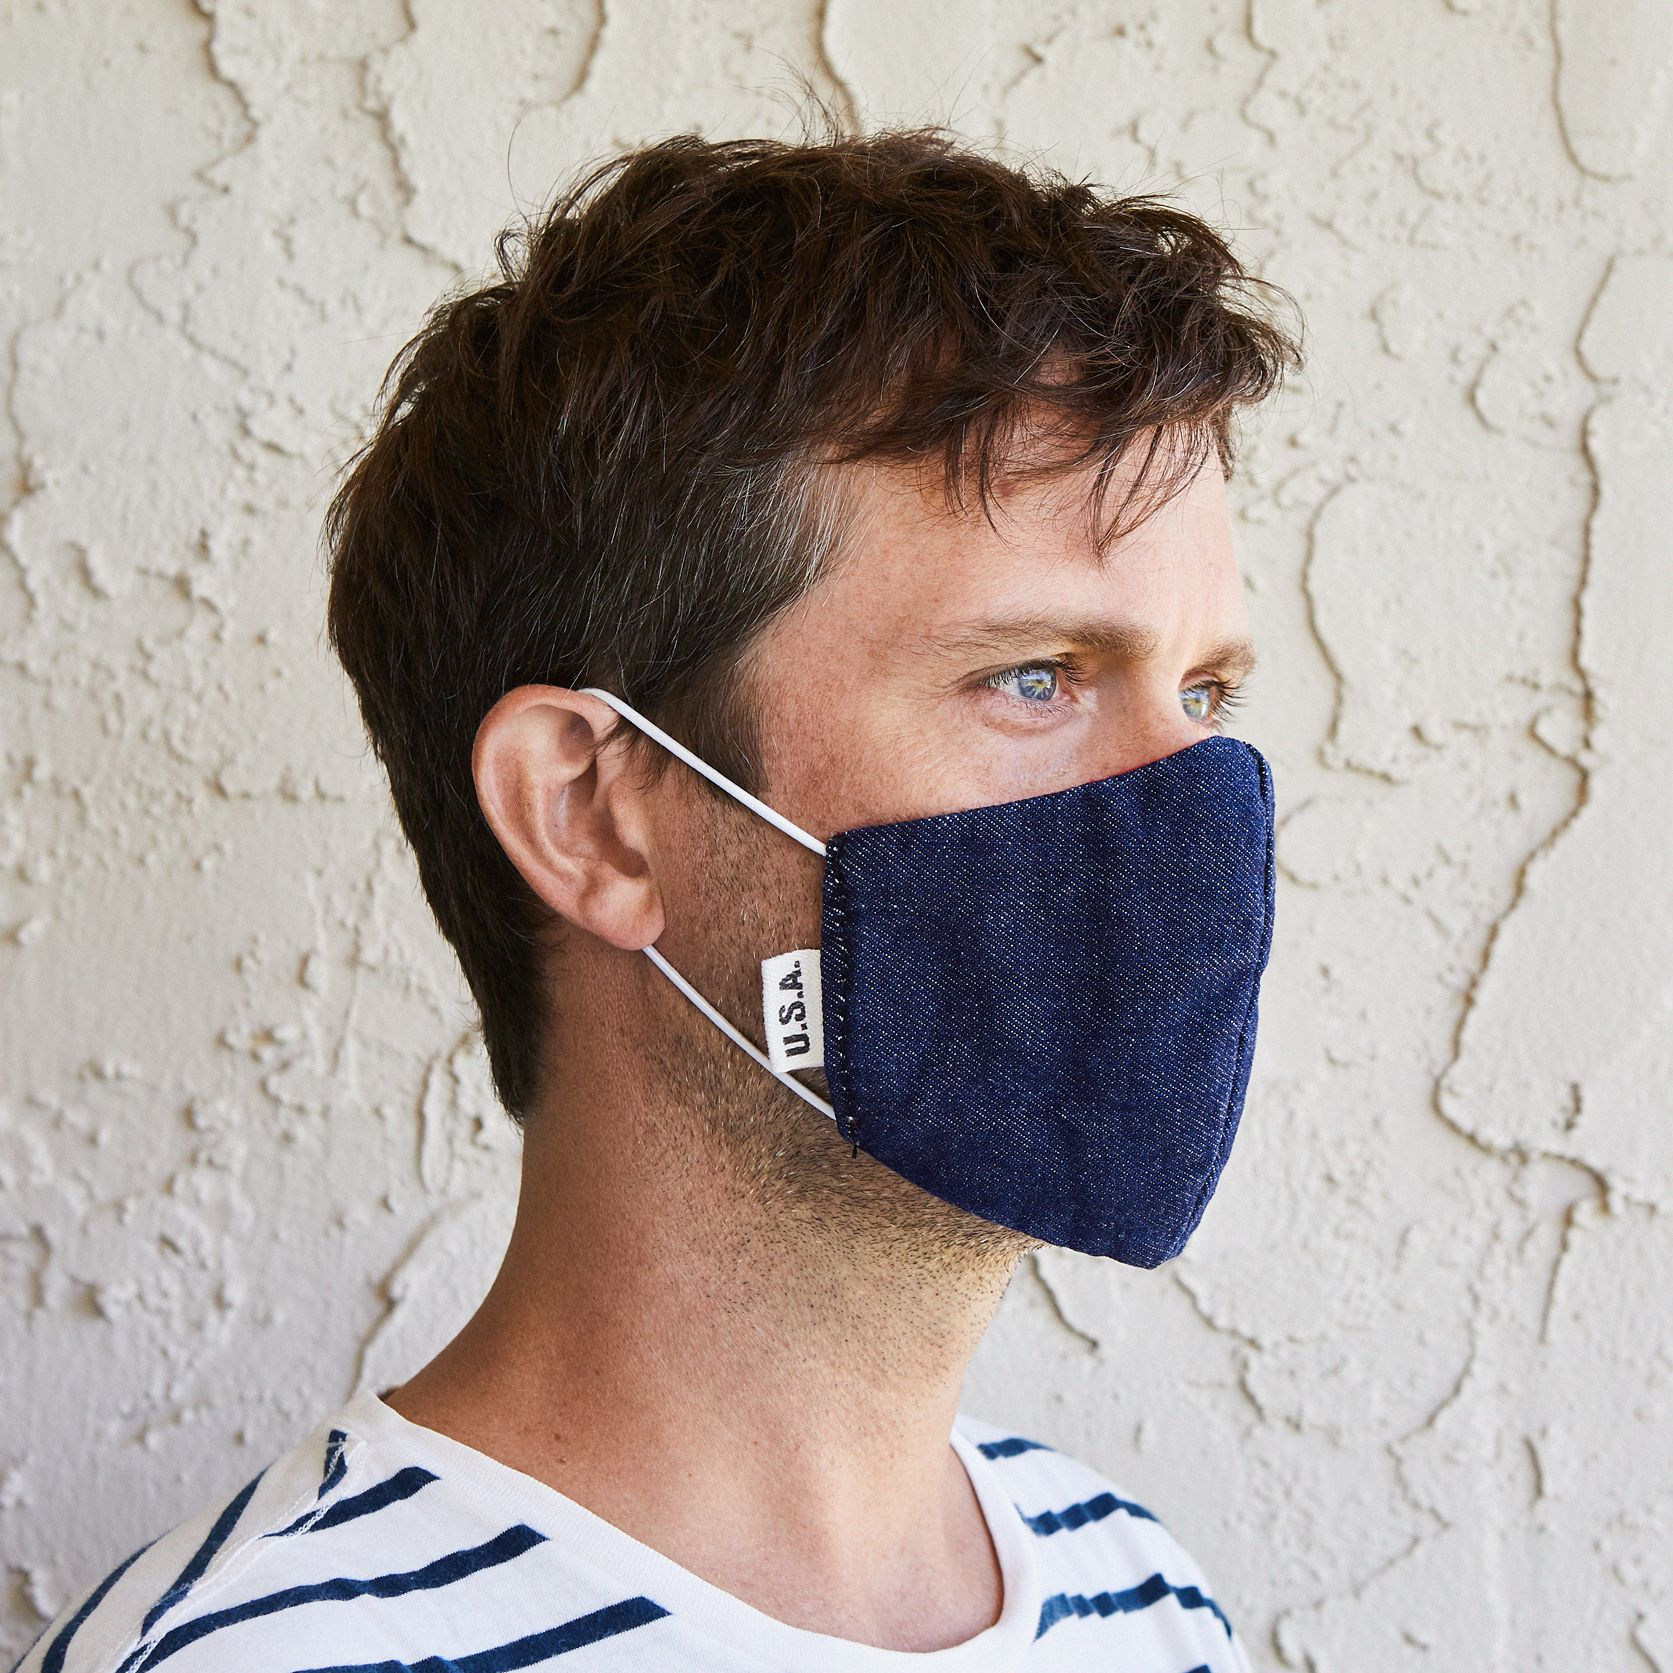 This Food52 Maker Is Donating Masks to Those in Need—Here's How You Can Help